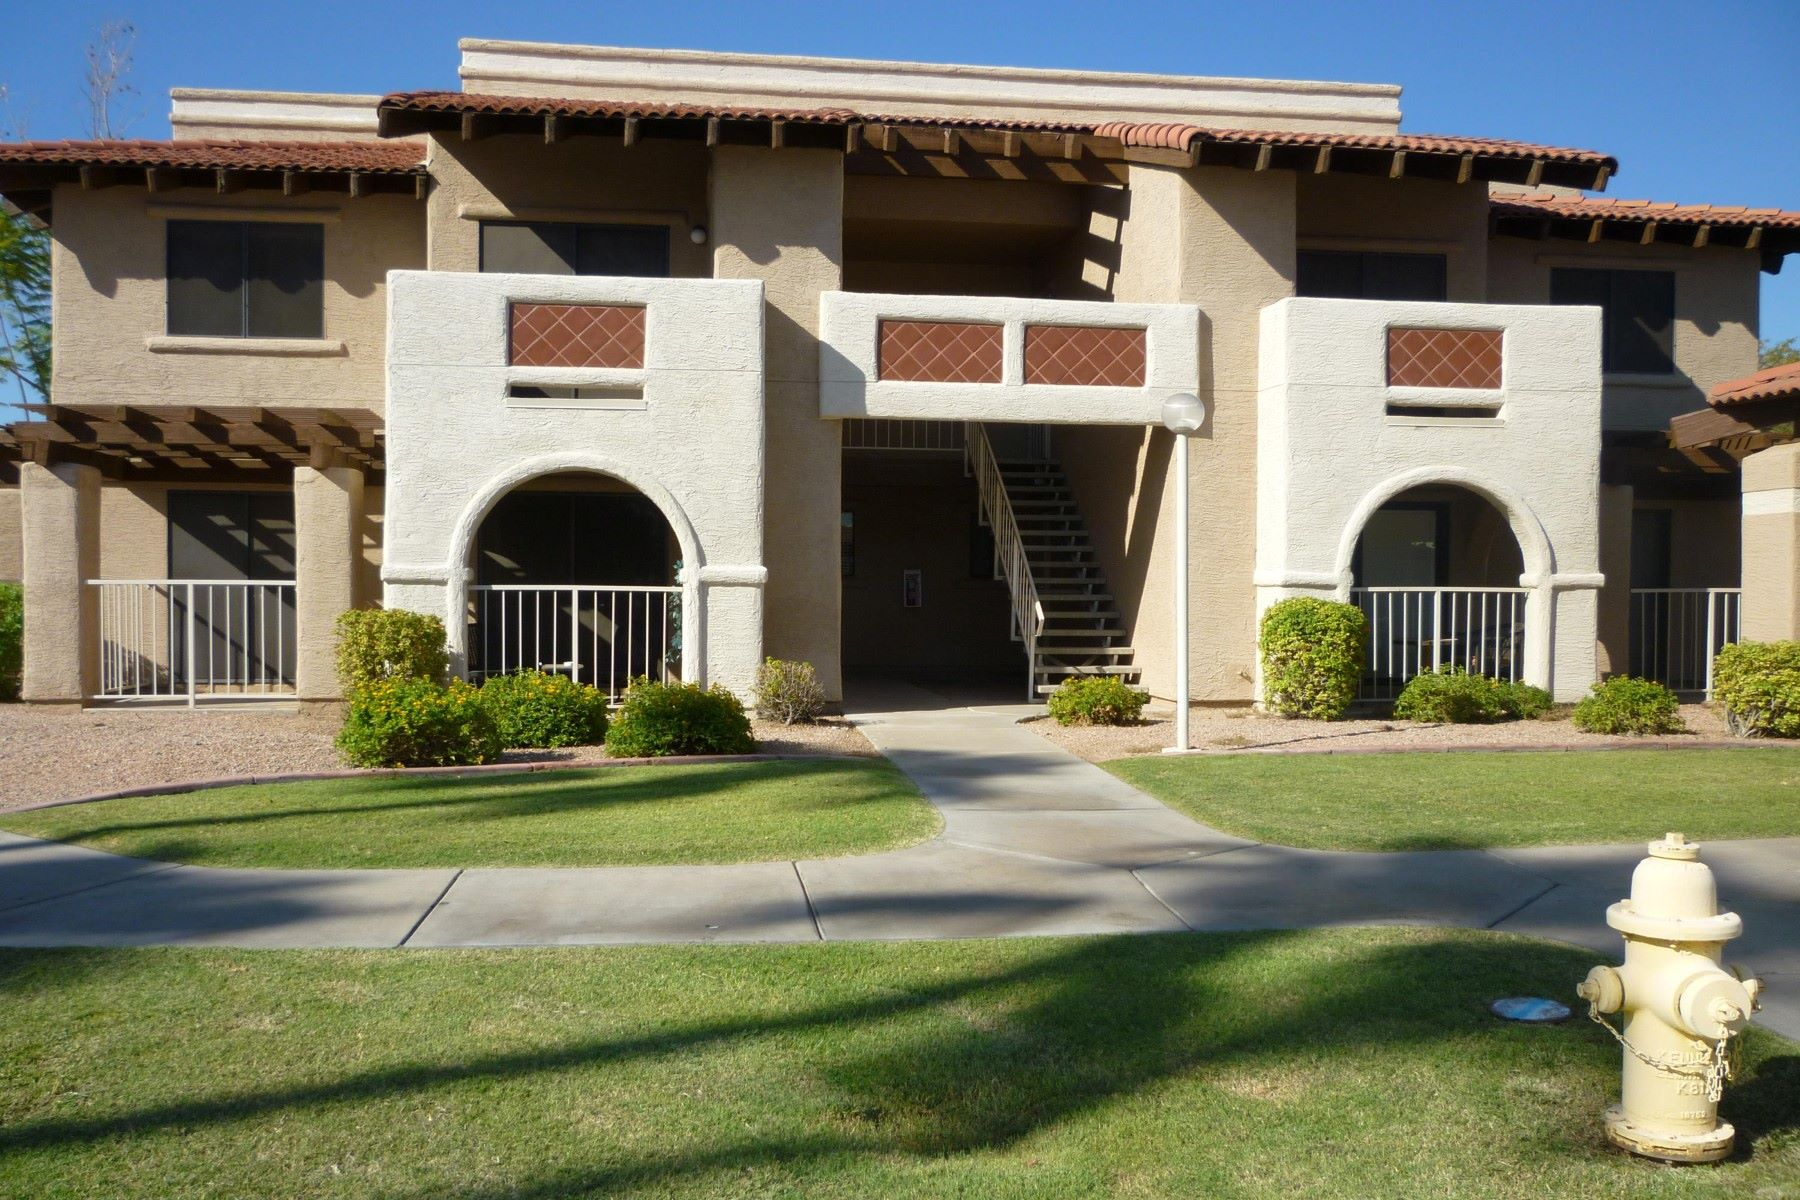 واحد منزل الأسرة للـ Rent في Lovely Glendale condo 5757 W Eugie Ave #2111 Glendale, Arizona, 85304 United States